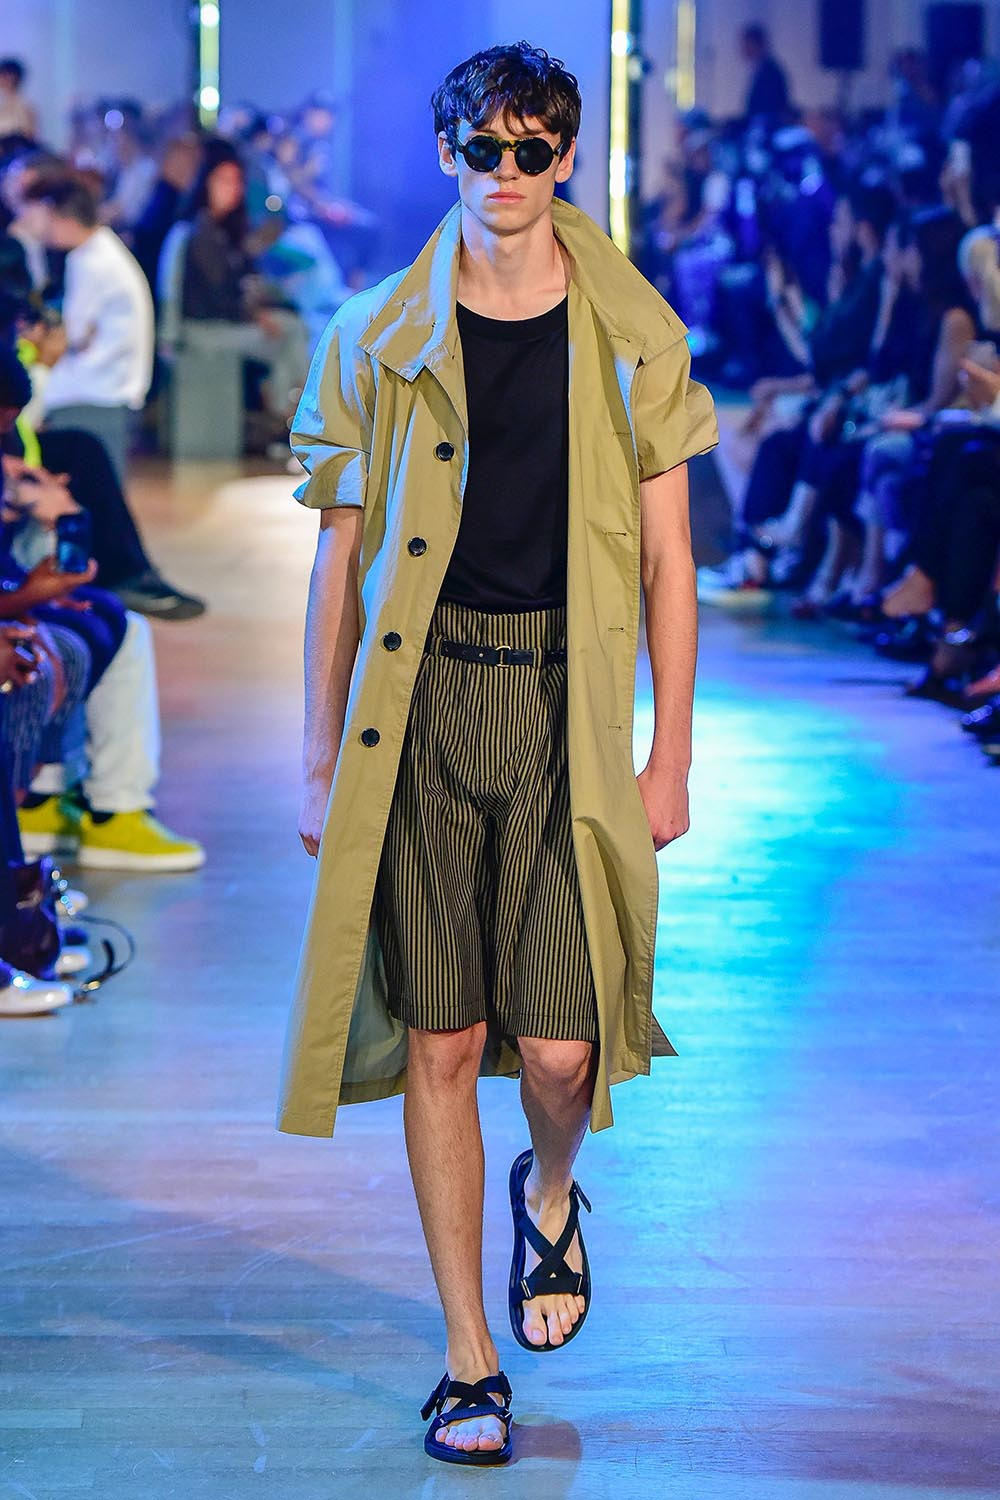 Cerruti 1881 Paris Fashion Week Men's SS19 - Sagaboi - Look 9